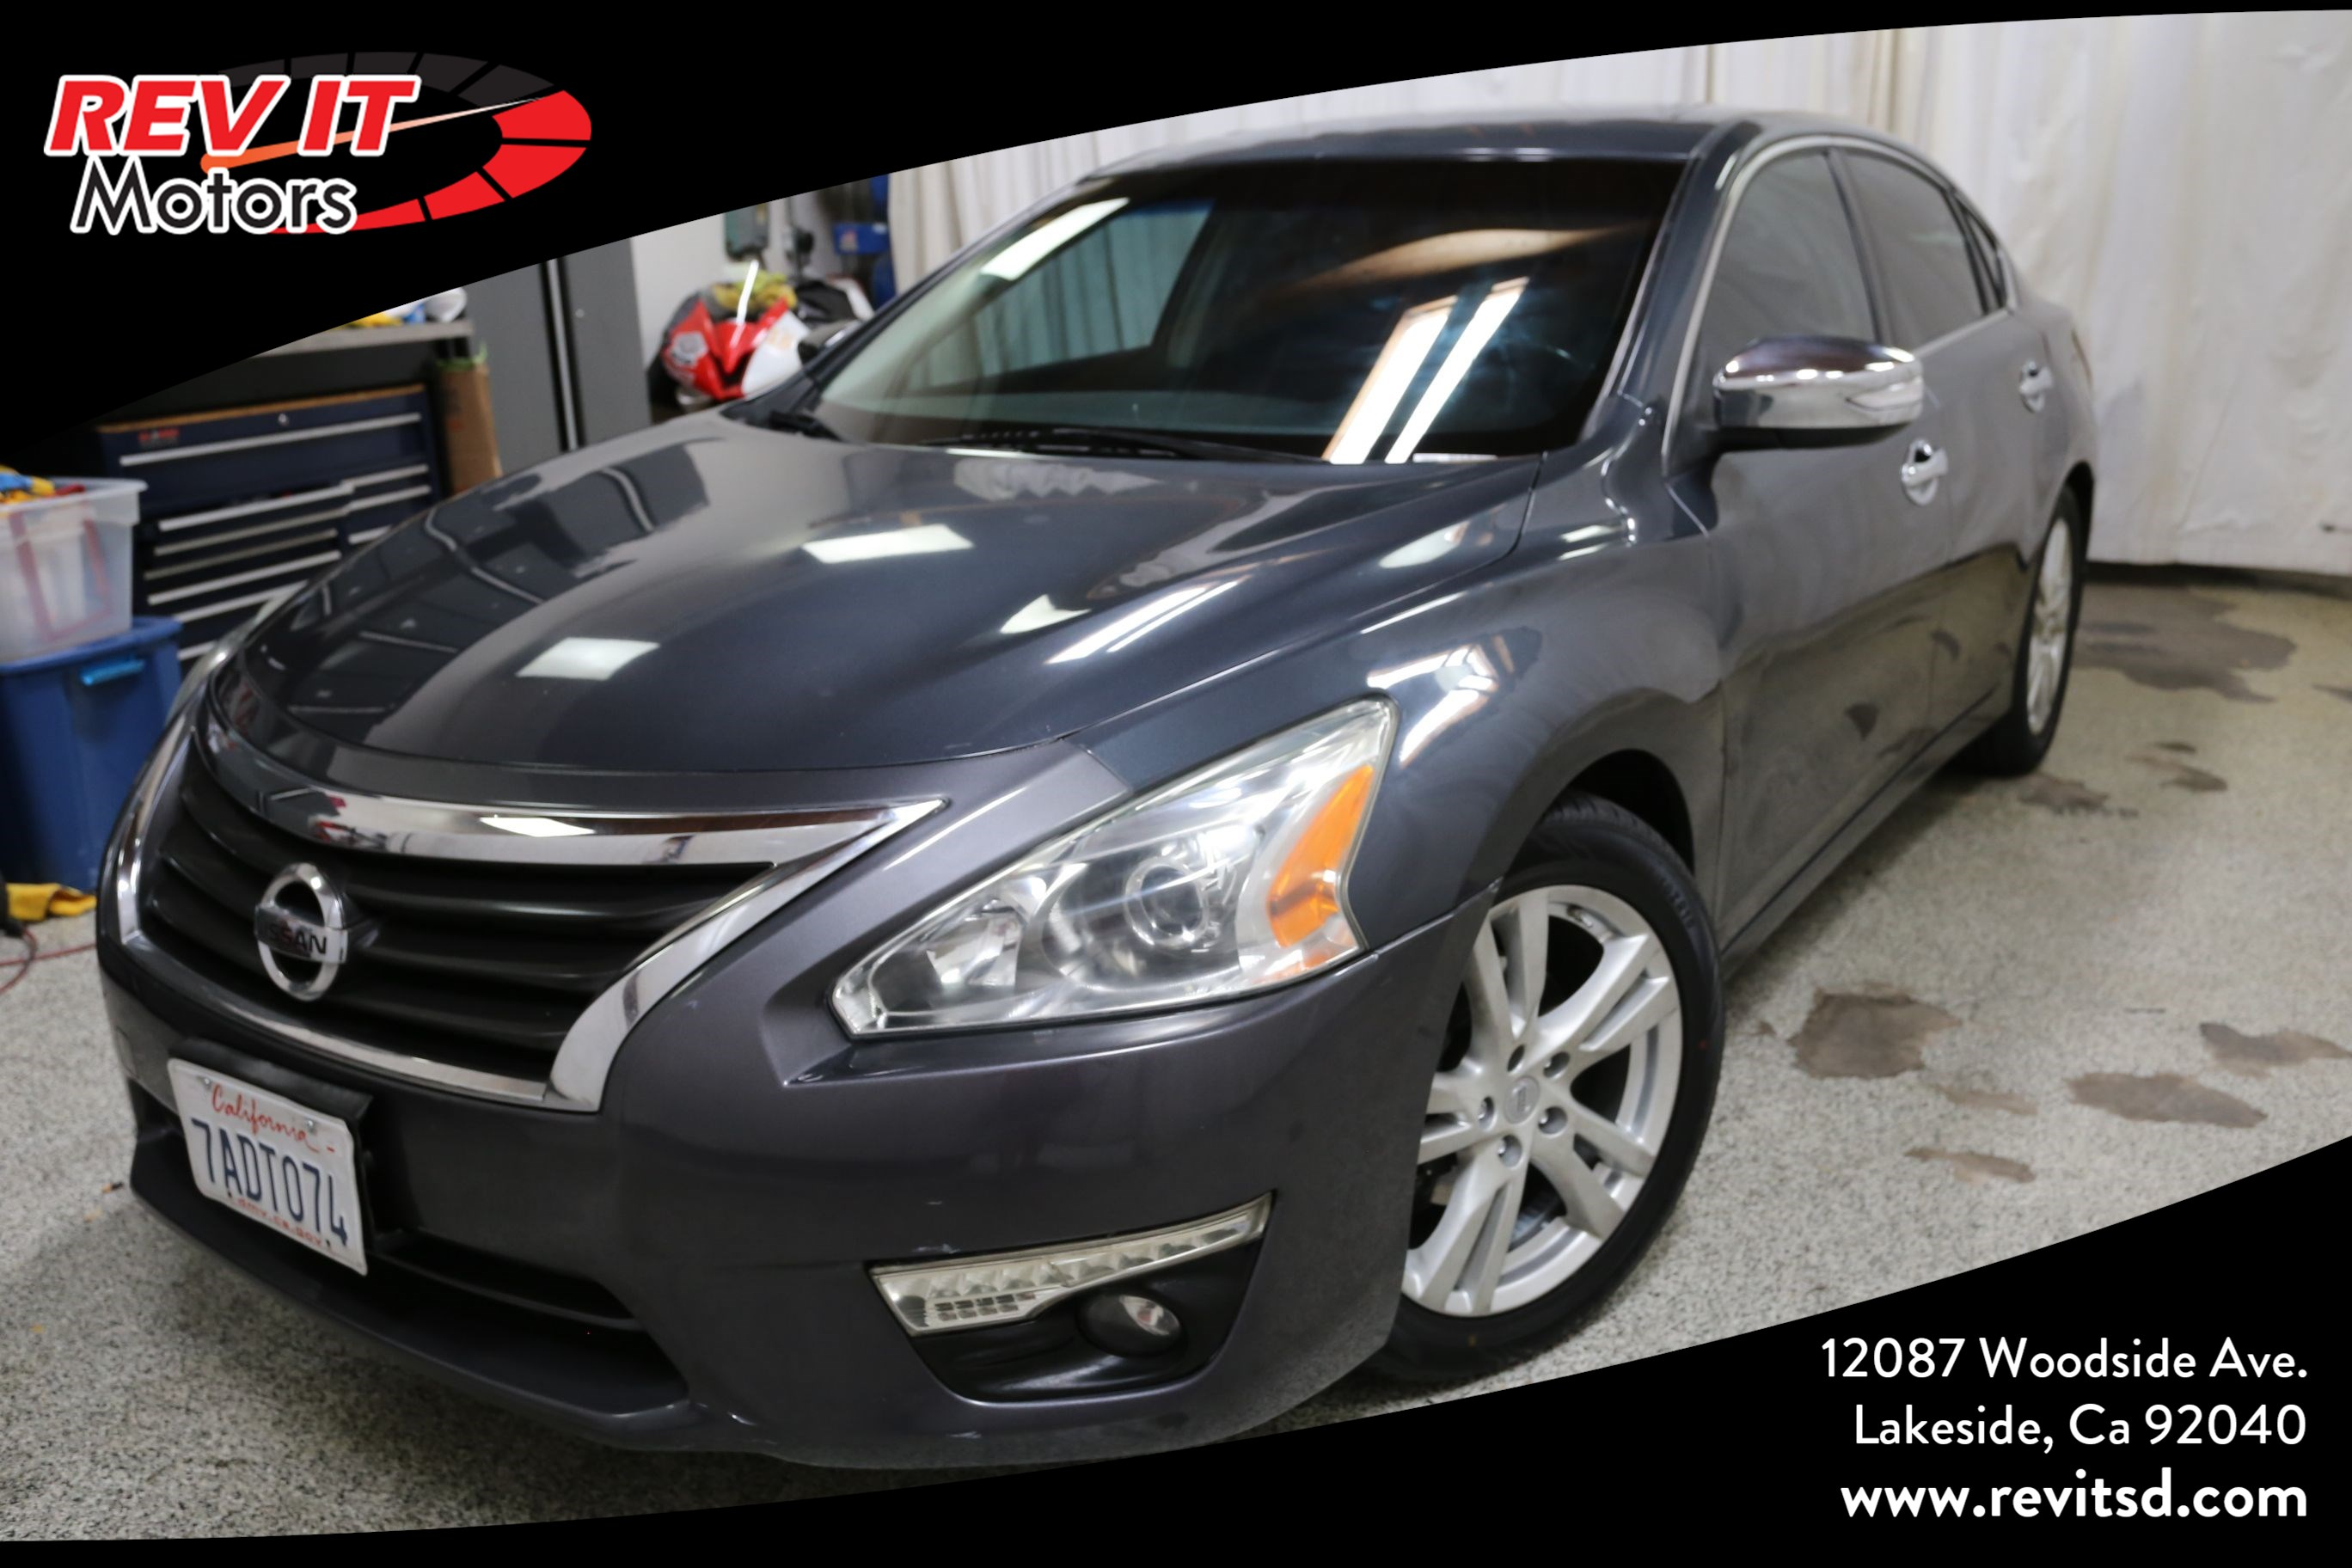 2013 Nissan Altima 3.5 SL Sedan 4D